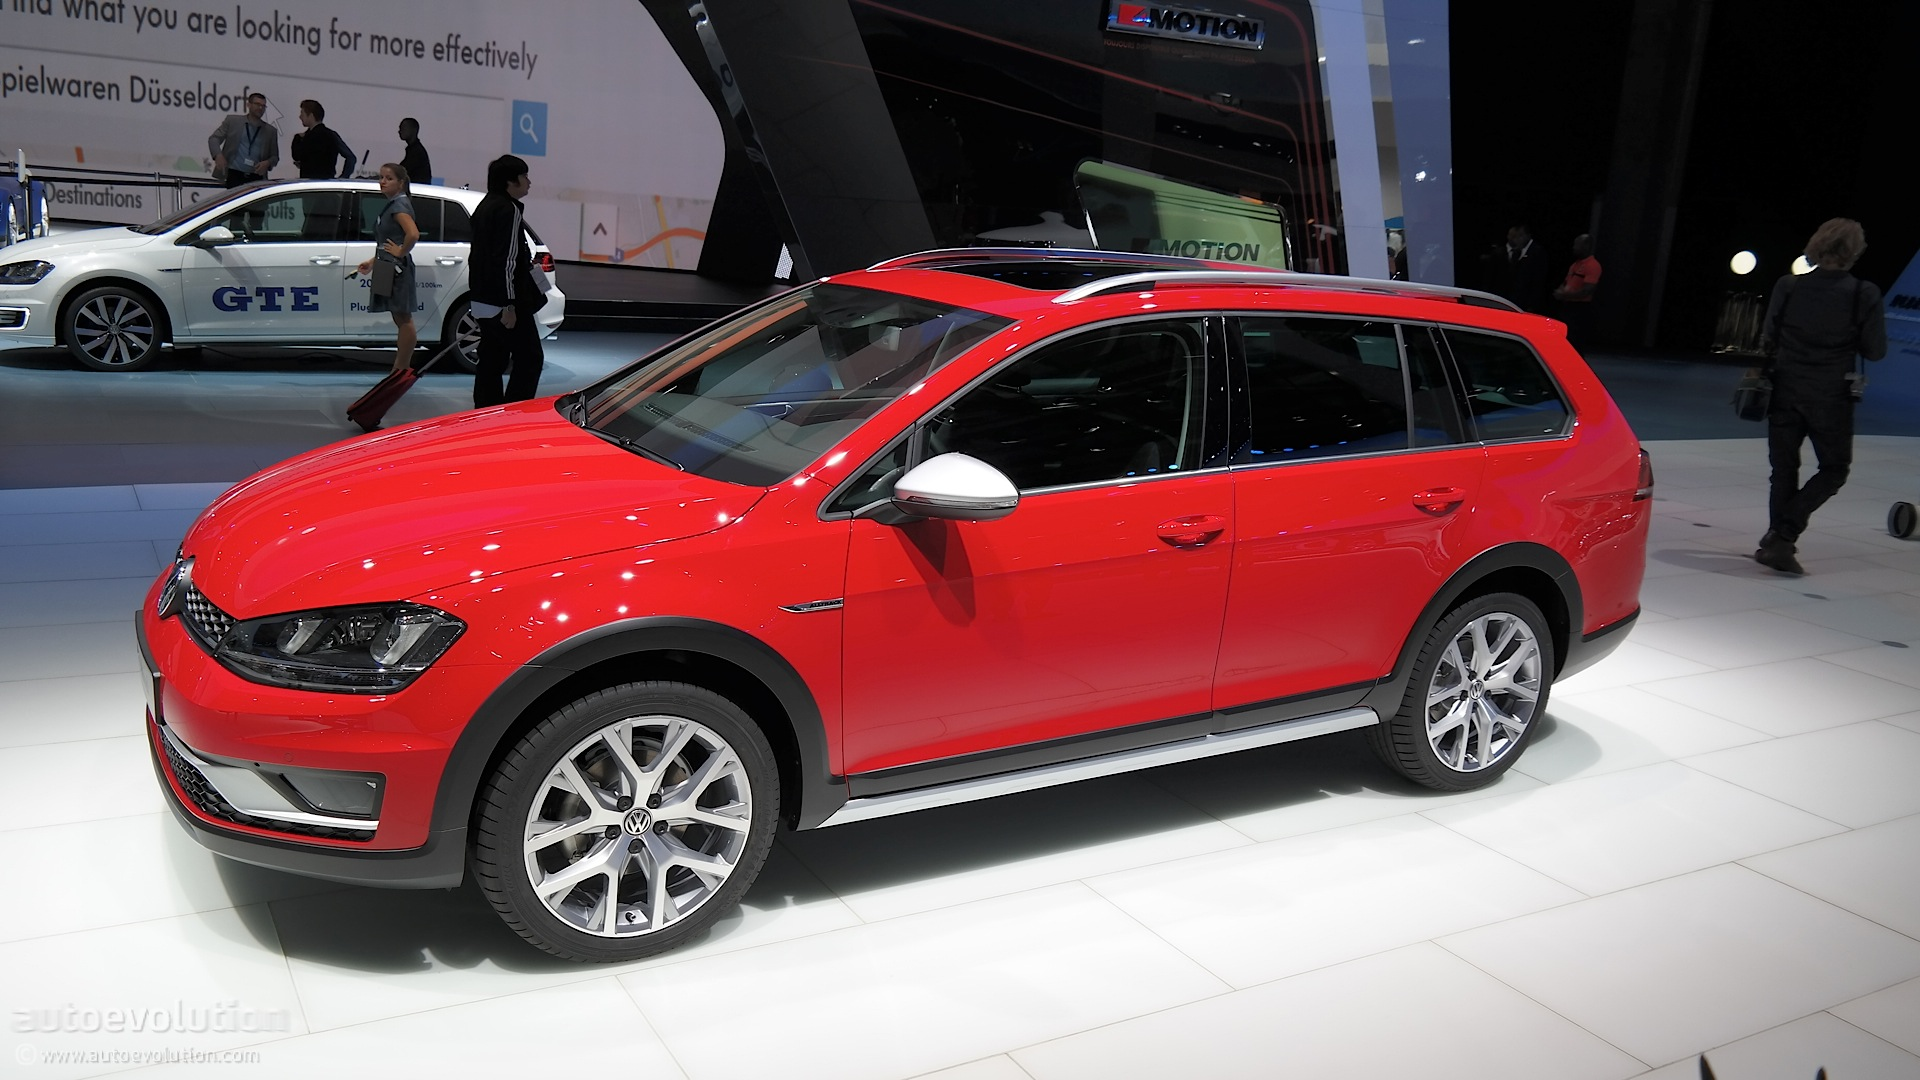 Volkswagen golf alltrack unveiled german compact goes offroad in paris live photos